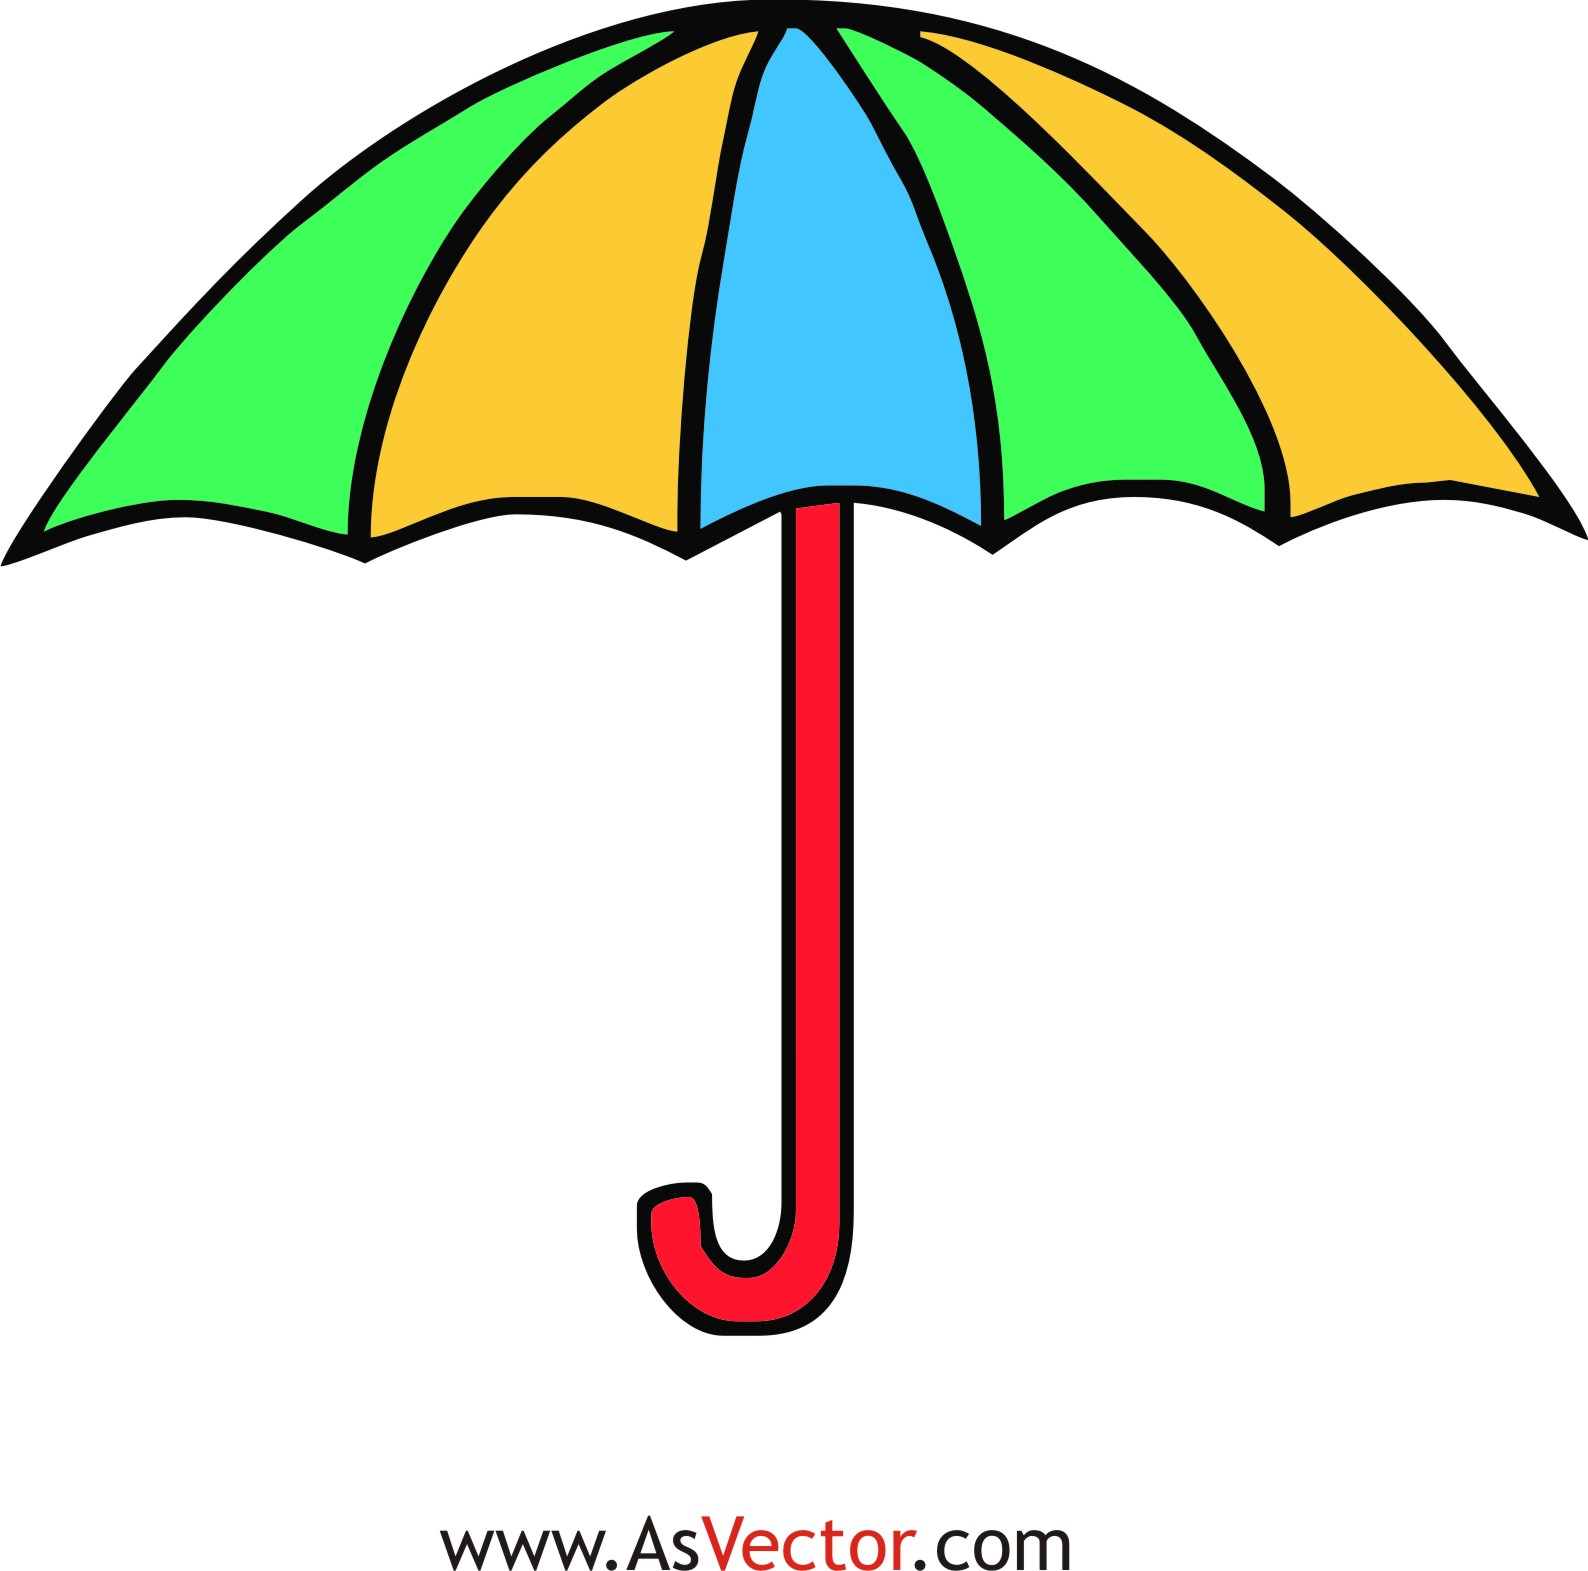 Umbrella Clip Art Free & Umbrella Clip Art Clip Art Images.